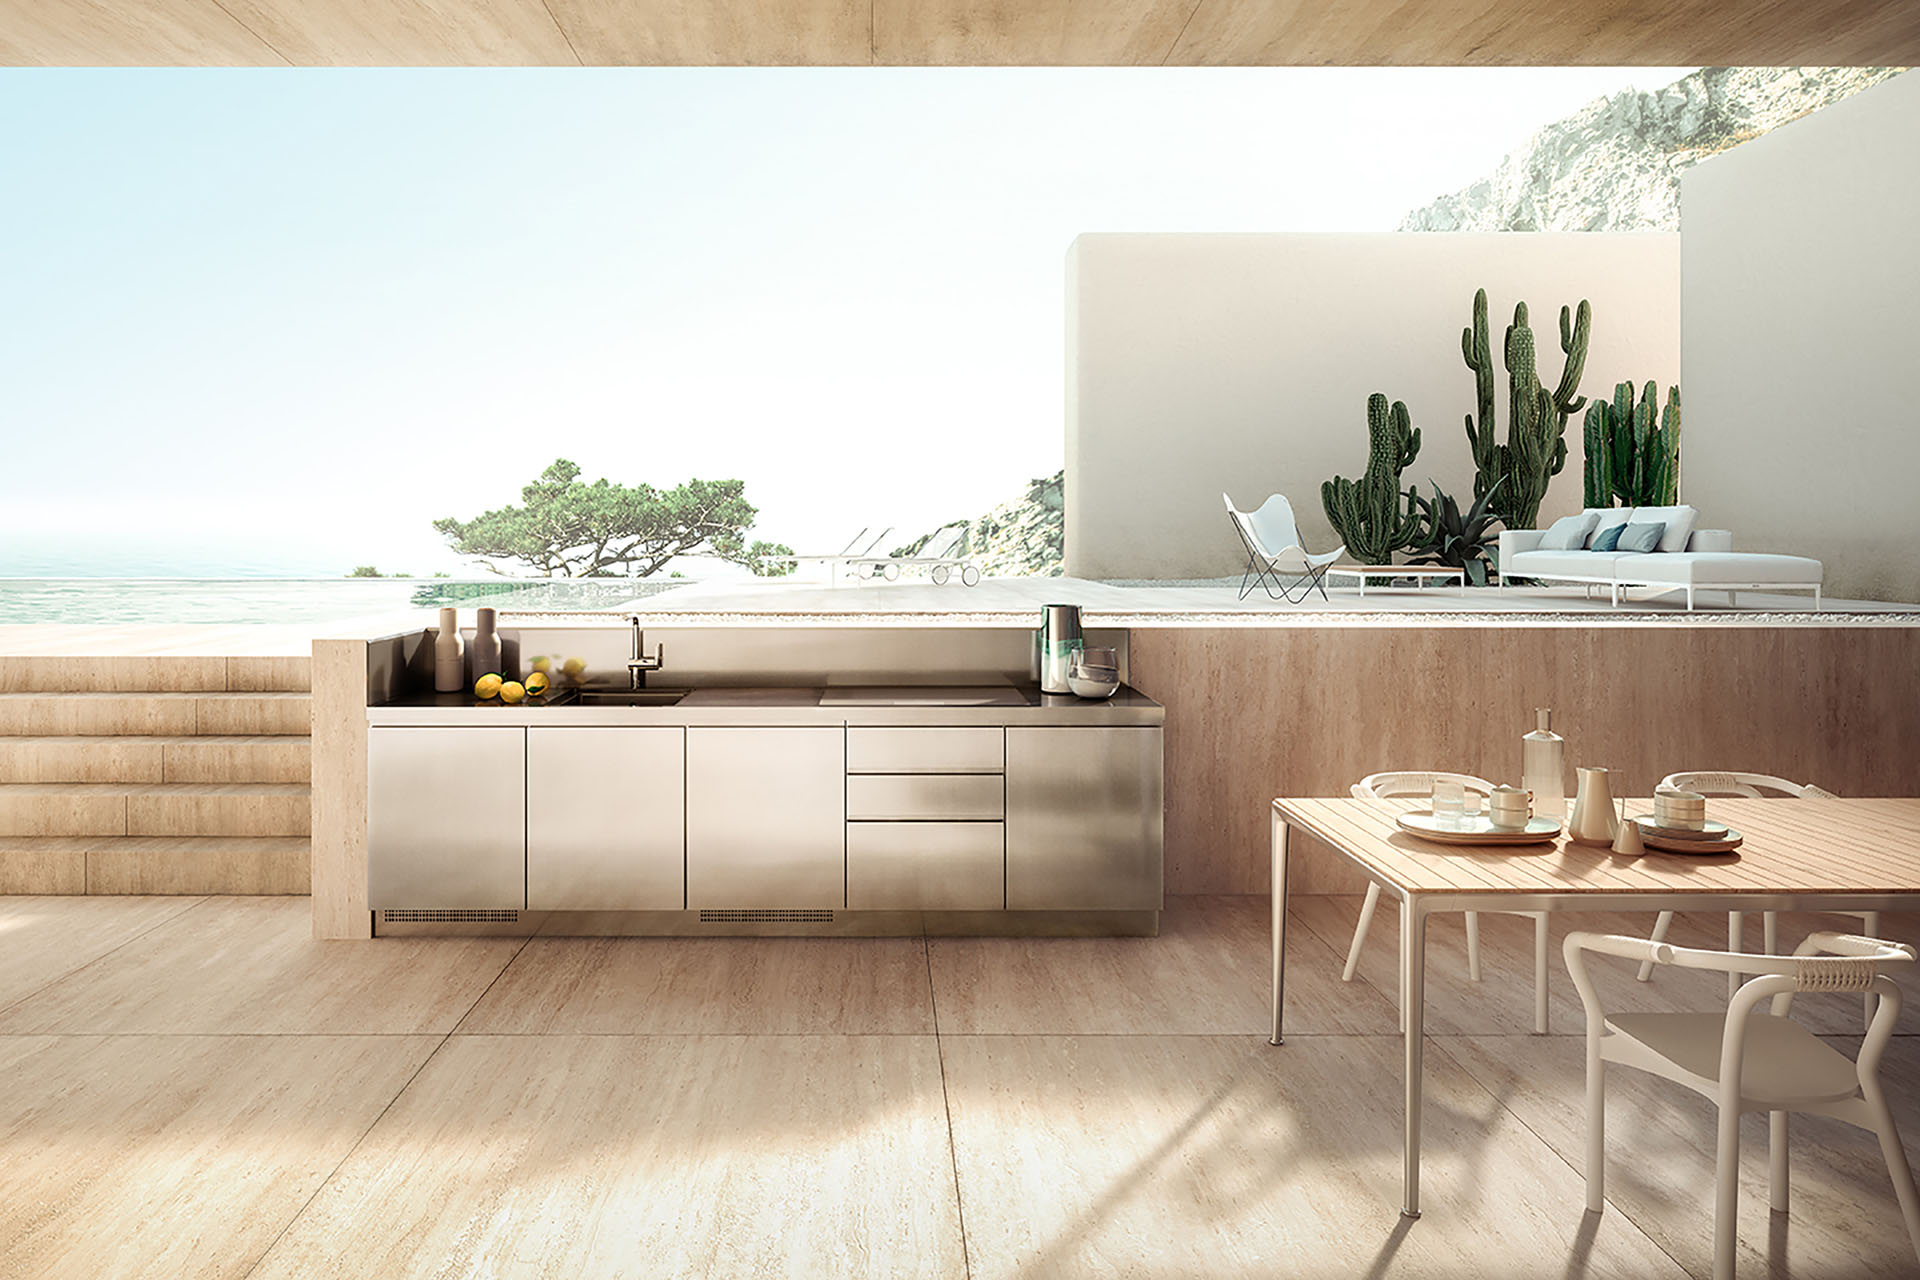 Abimis stainless steel outdoor kitchen with ocean view